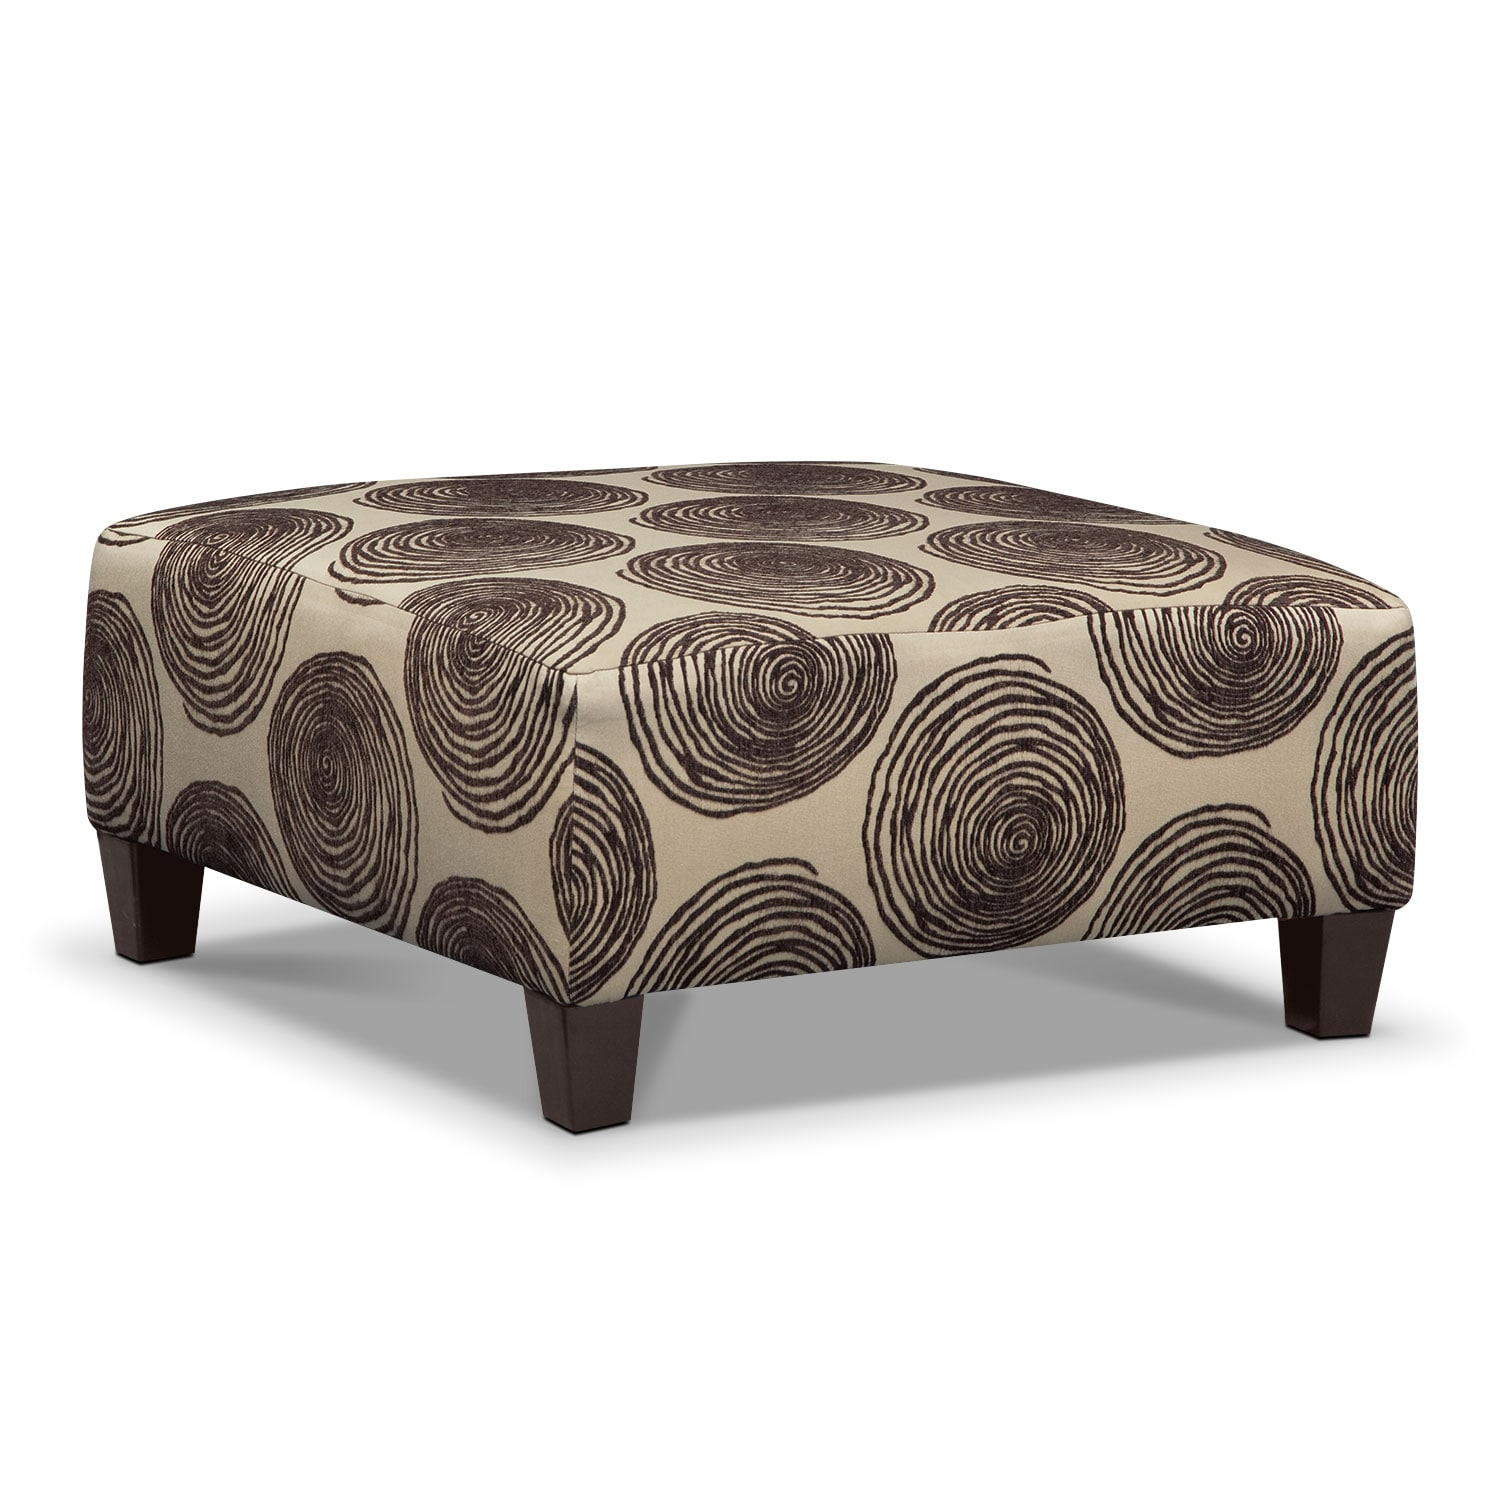 Living Room Furniture - Cordelle Cocktail Ottoman - Chocolate